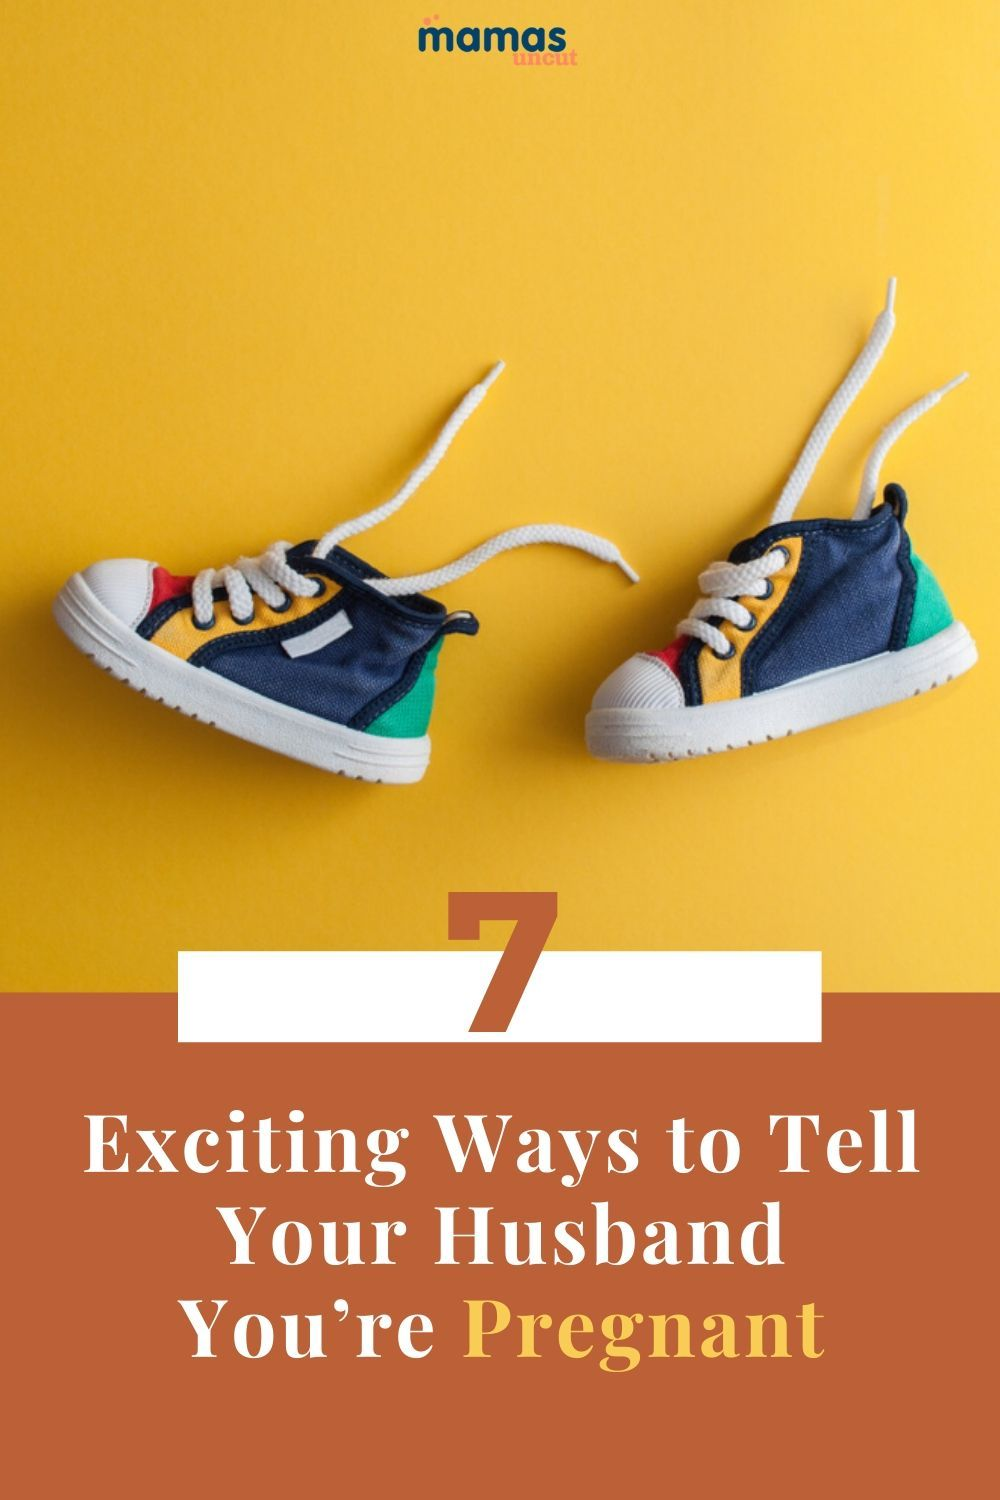 7 Creative Ways to Tell Your Husband You're Pregnant  Finding new and funny ways to tell your husband you're pregnant can be a challenge, but it's not impossible. Don't overthink it and have fun with the reveal!  #preganancy #relationshipadvice #babies